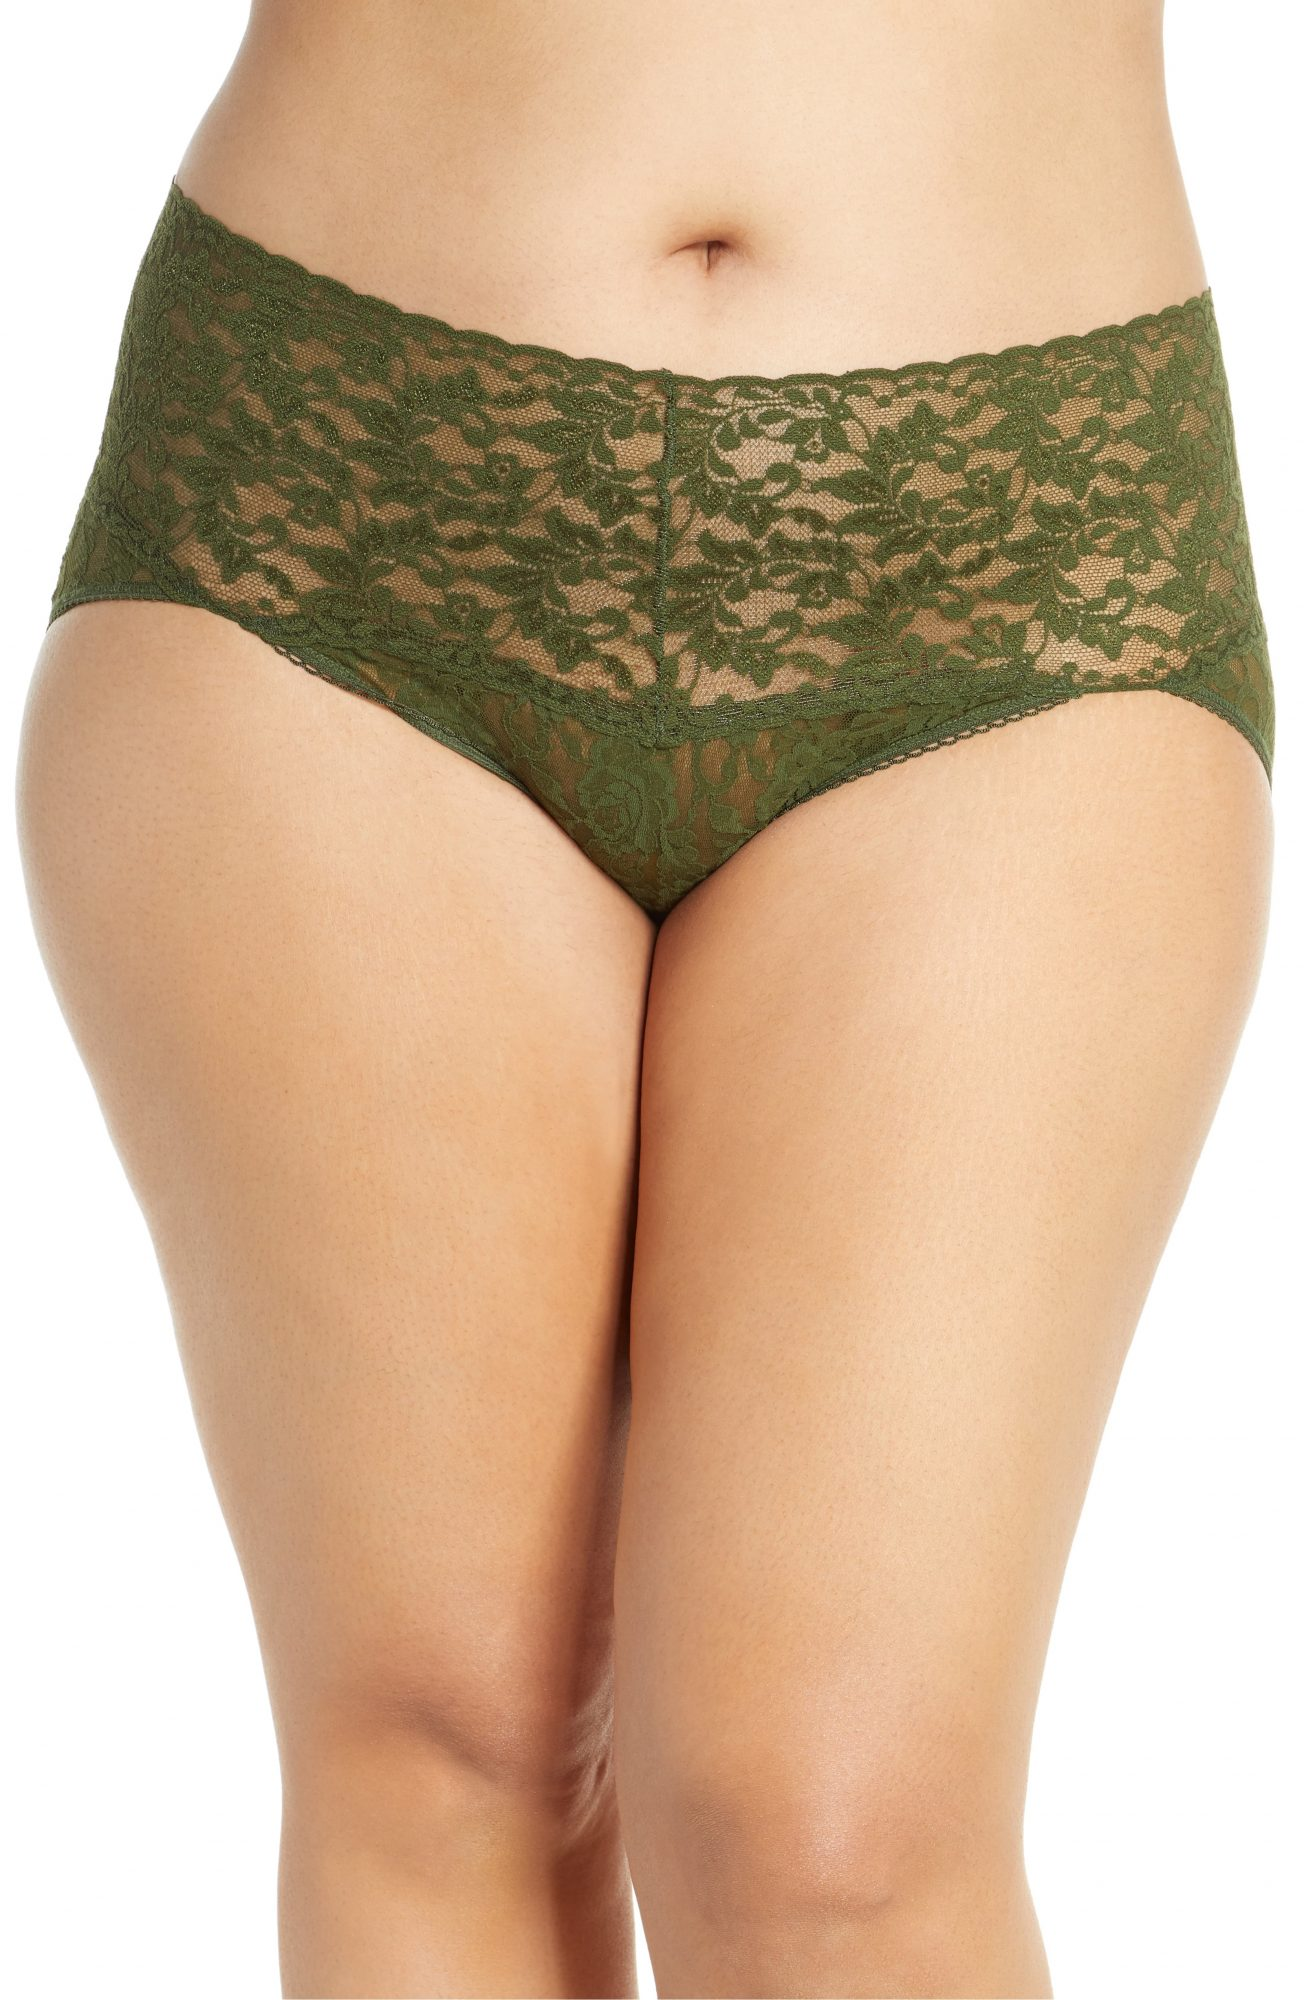 Plus-Size Lingerie - Embed